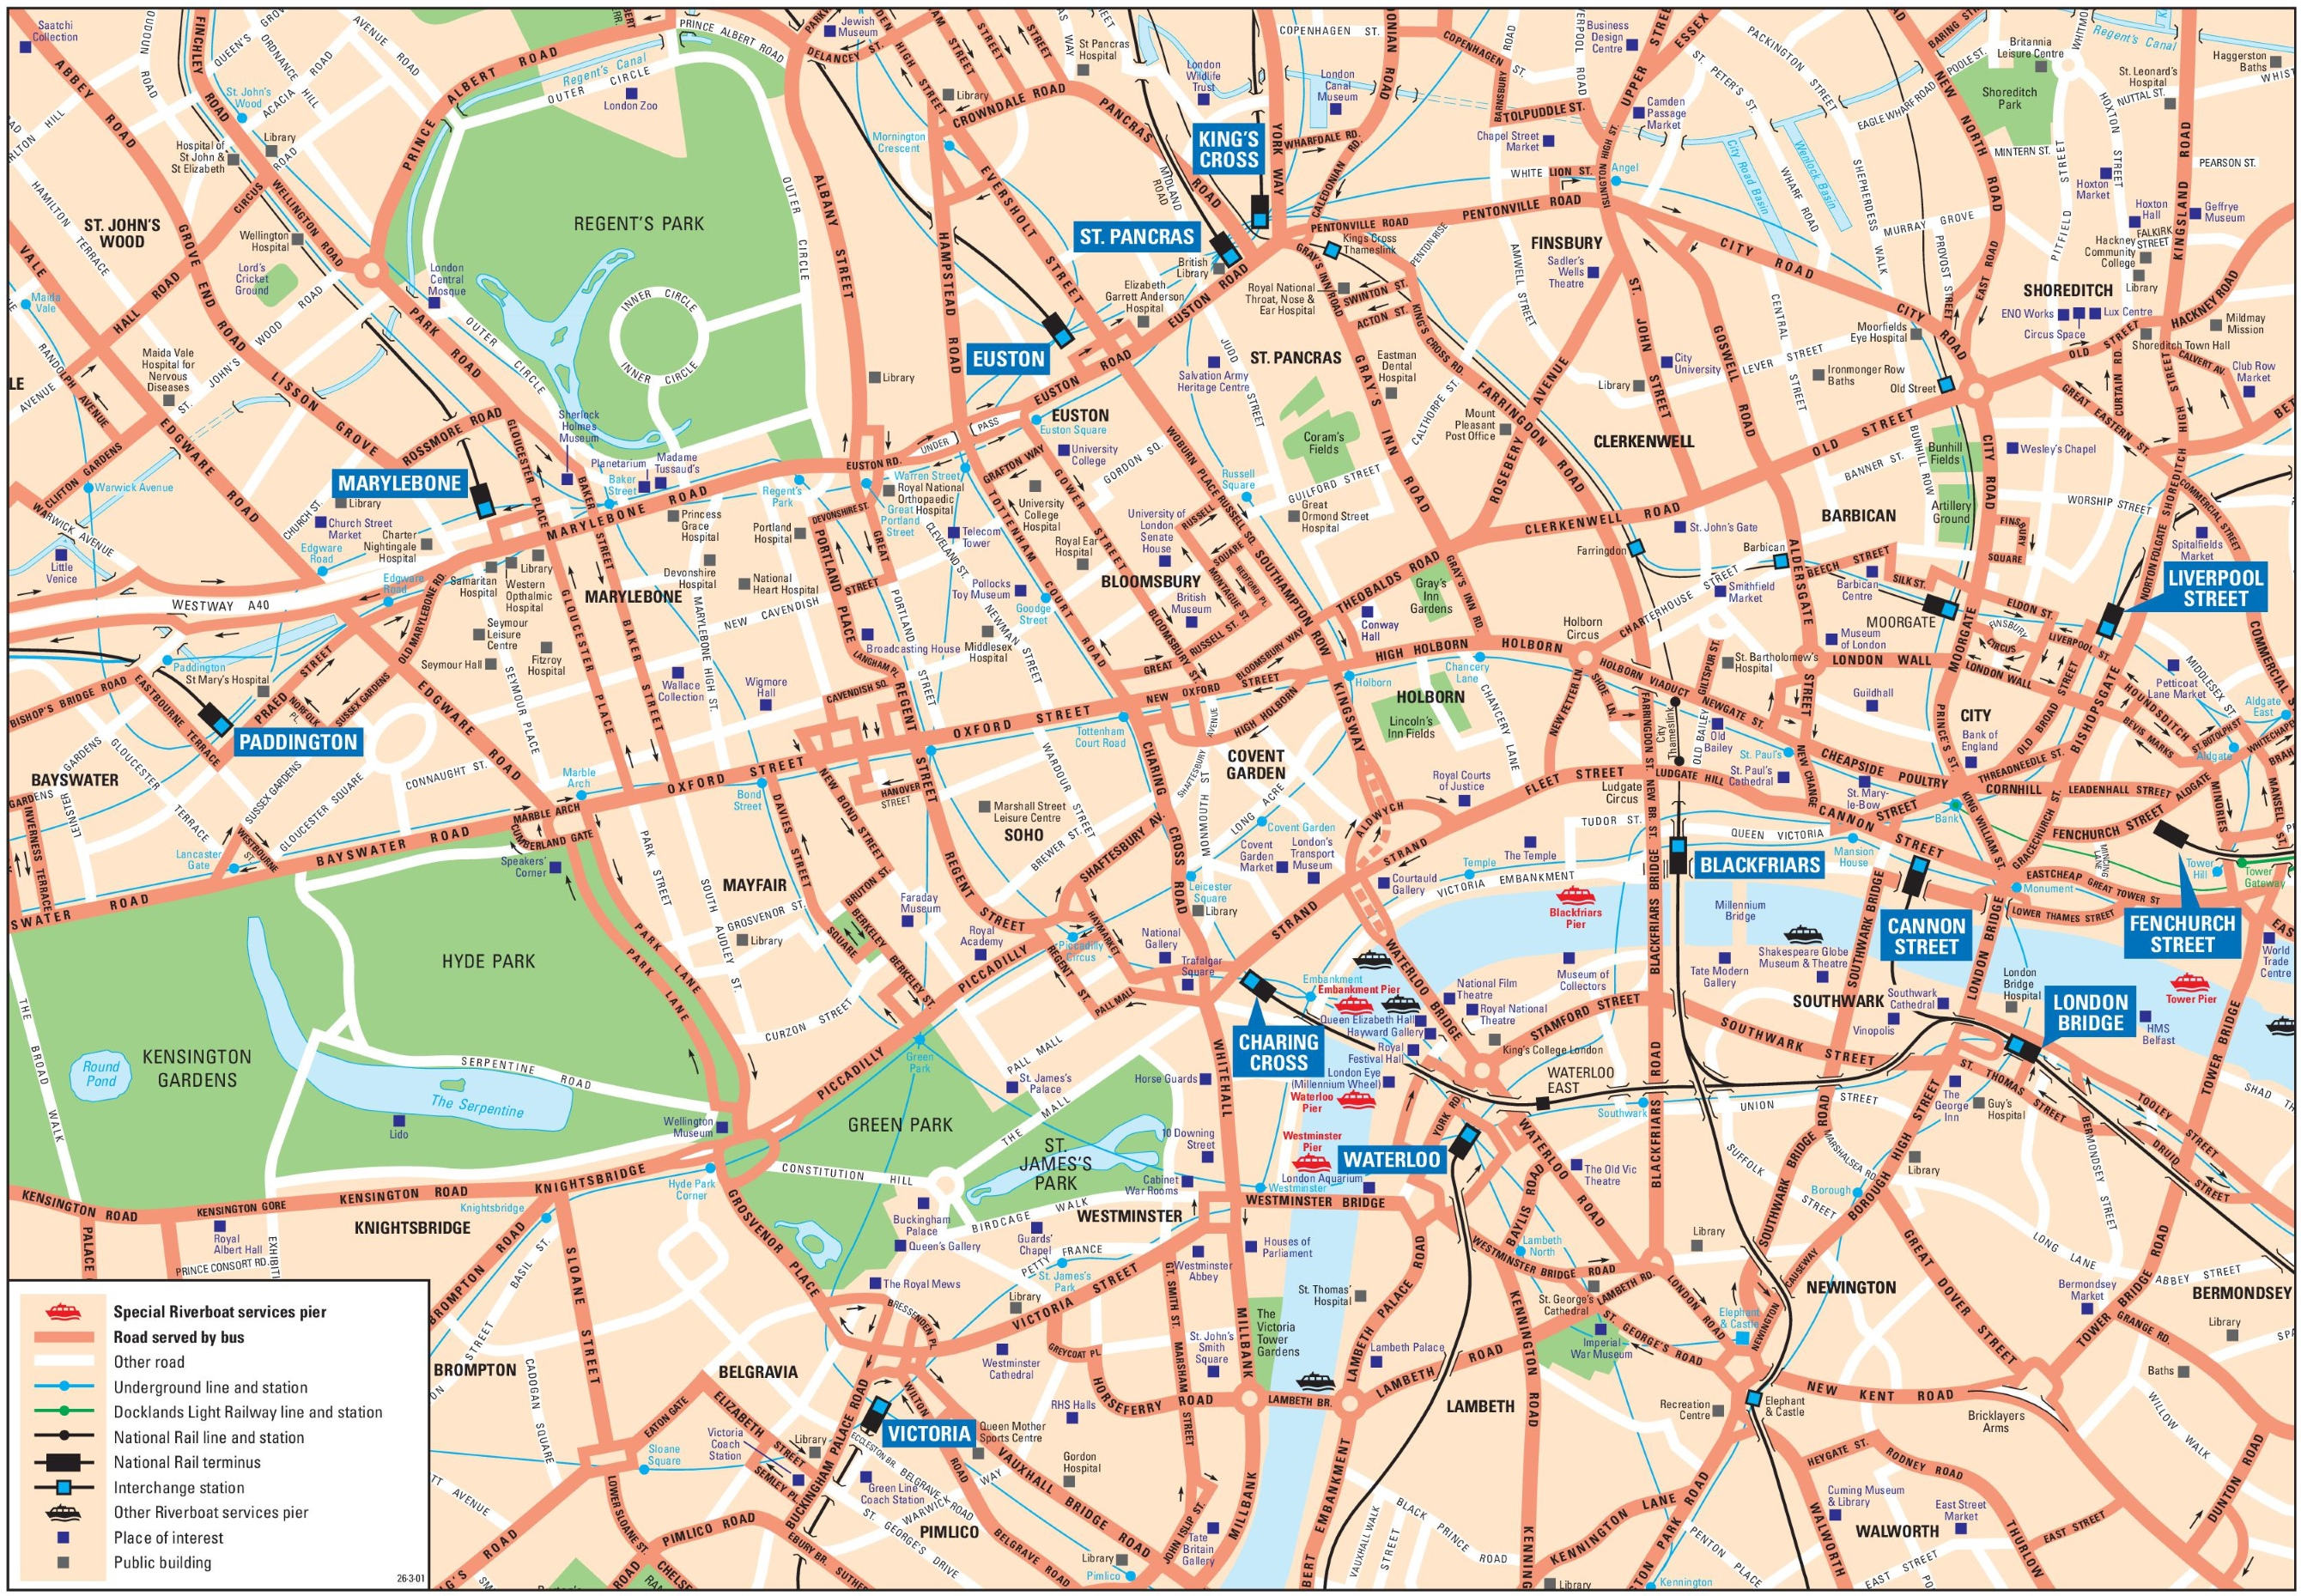 London City Area Map.London City Center Map